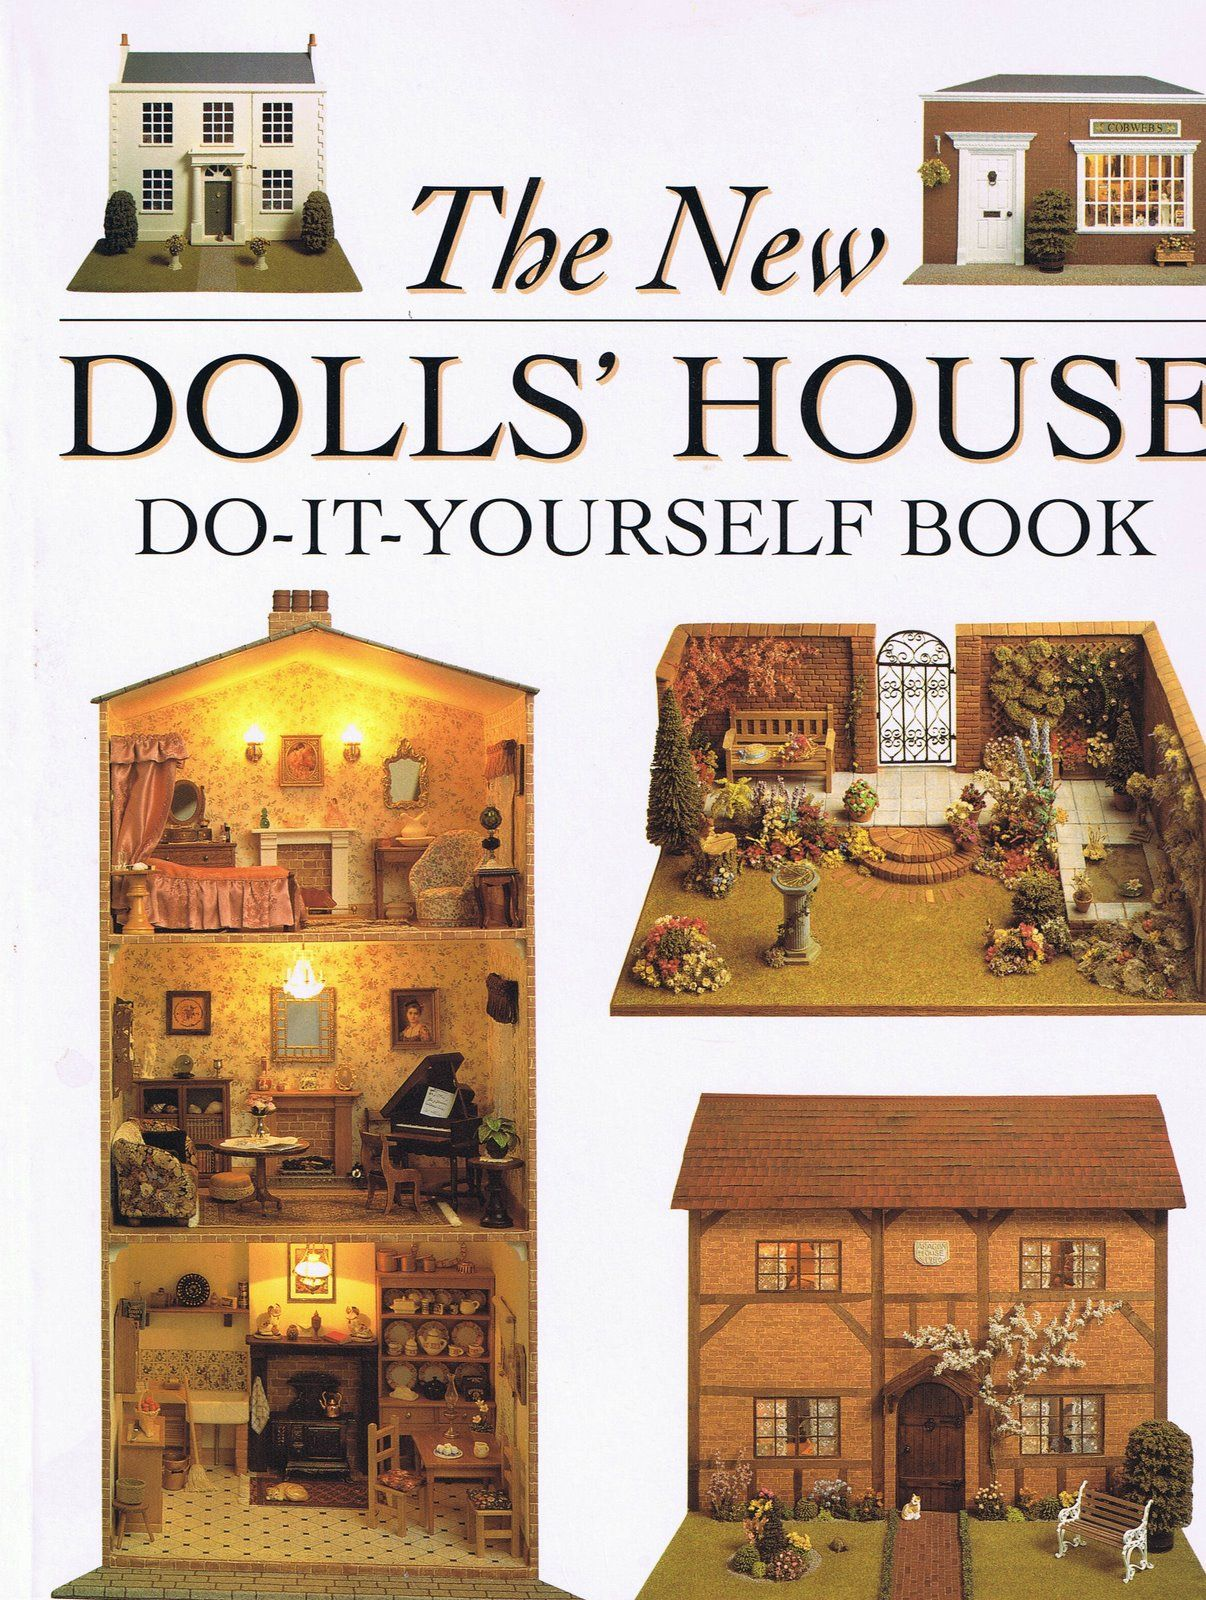 The new dolls house do it yourself book have dollhouse books the new dolls house do it yourself book have solutioingenieria Choice Image